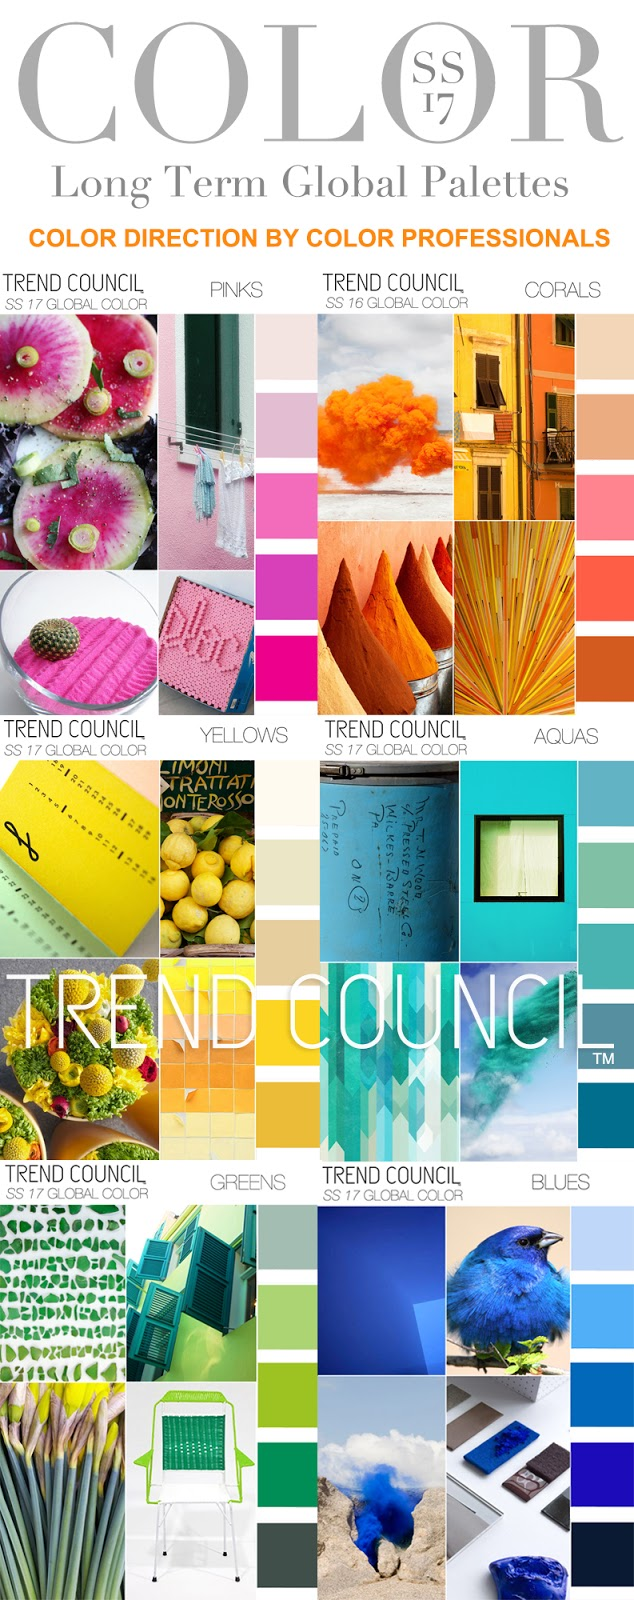 Fashion Trend And Colour S S 2017 All Markets furthermore Trends Stylesight Color Evolution Ss 14 besides 2015 04 01 archive as well New Home Colors For 2017 additionally SS2017 Trend Forecasting. on color forecast spring summer 2017